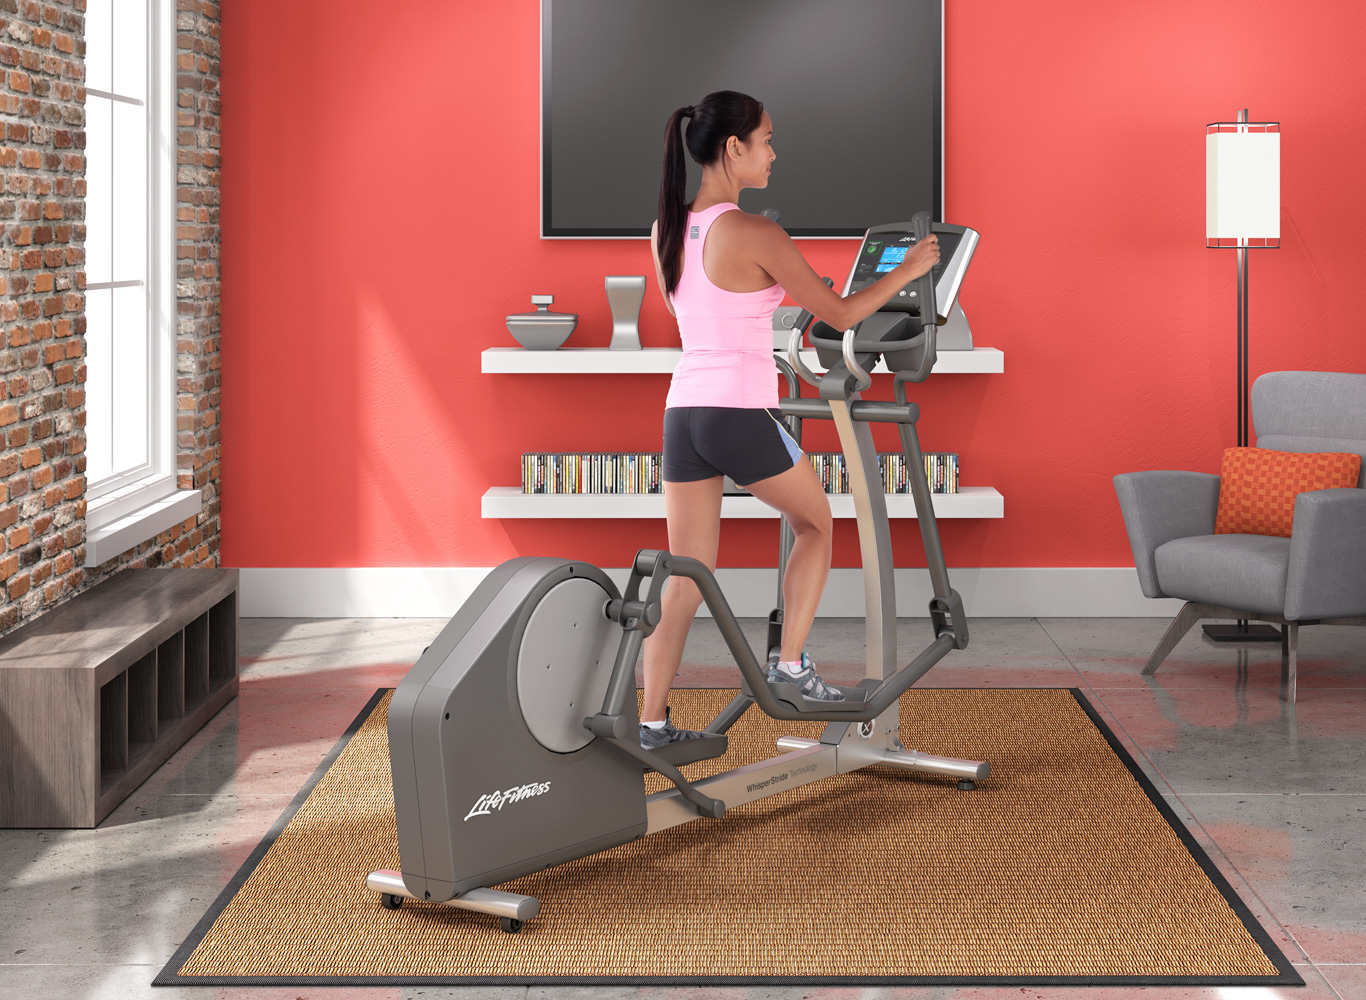 Save up to 25% on Fitness Equipment